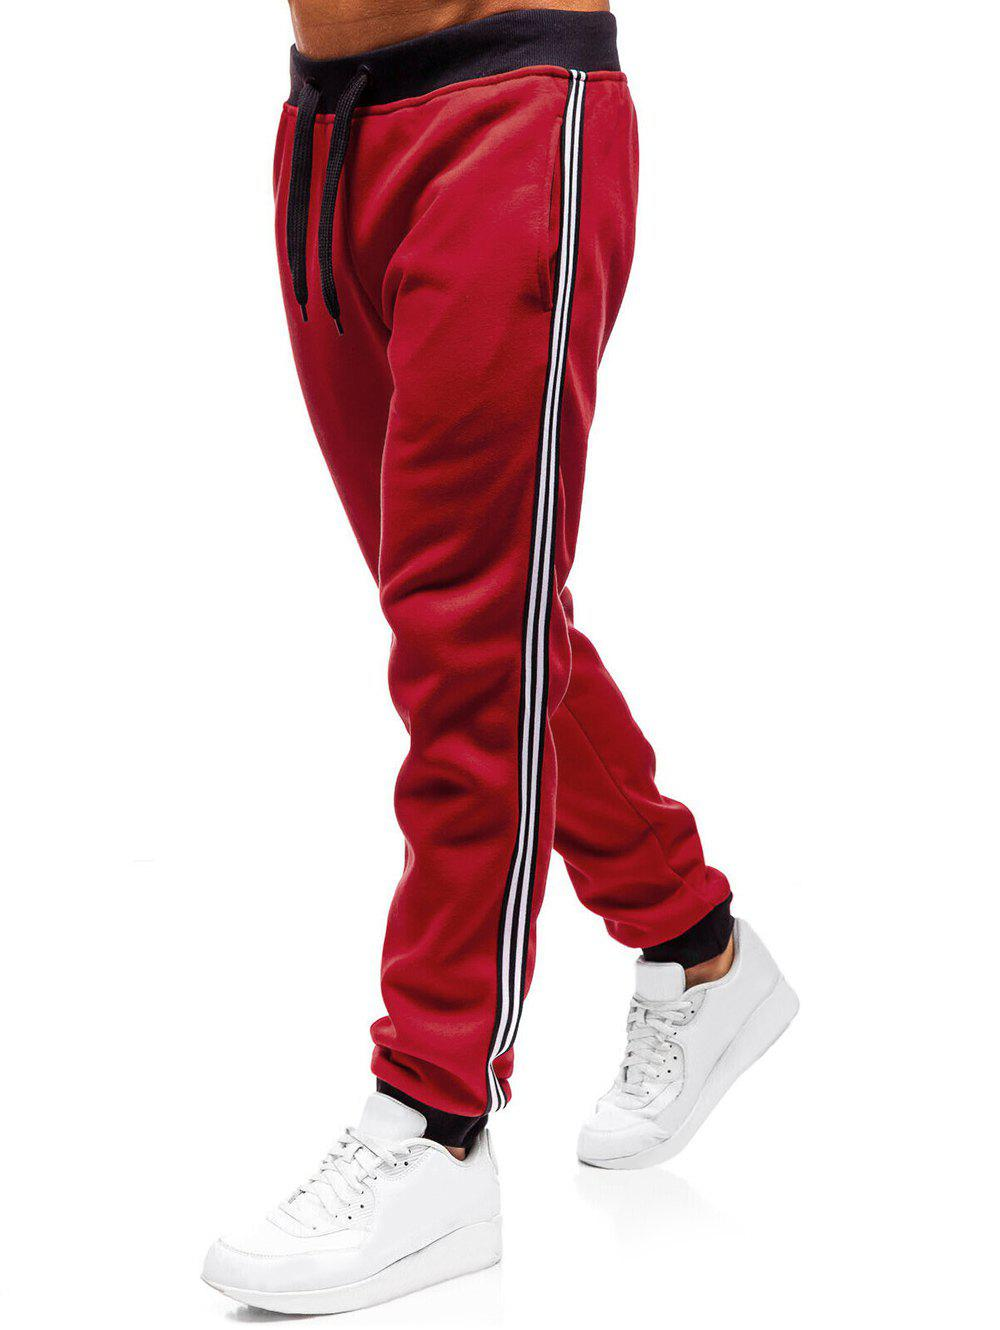 Contrast Stripe Trim Drawstring Sport Jogger Pants - RED XL